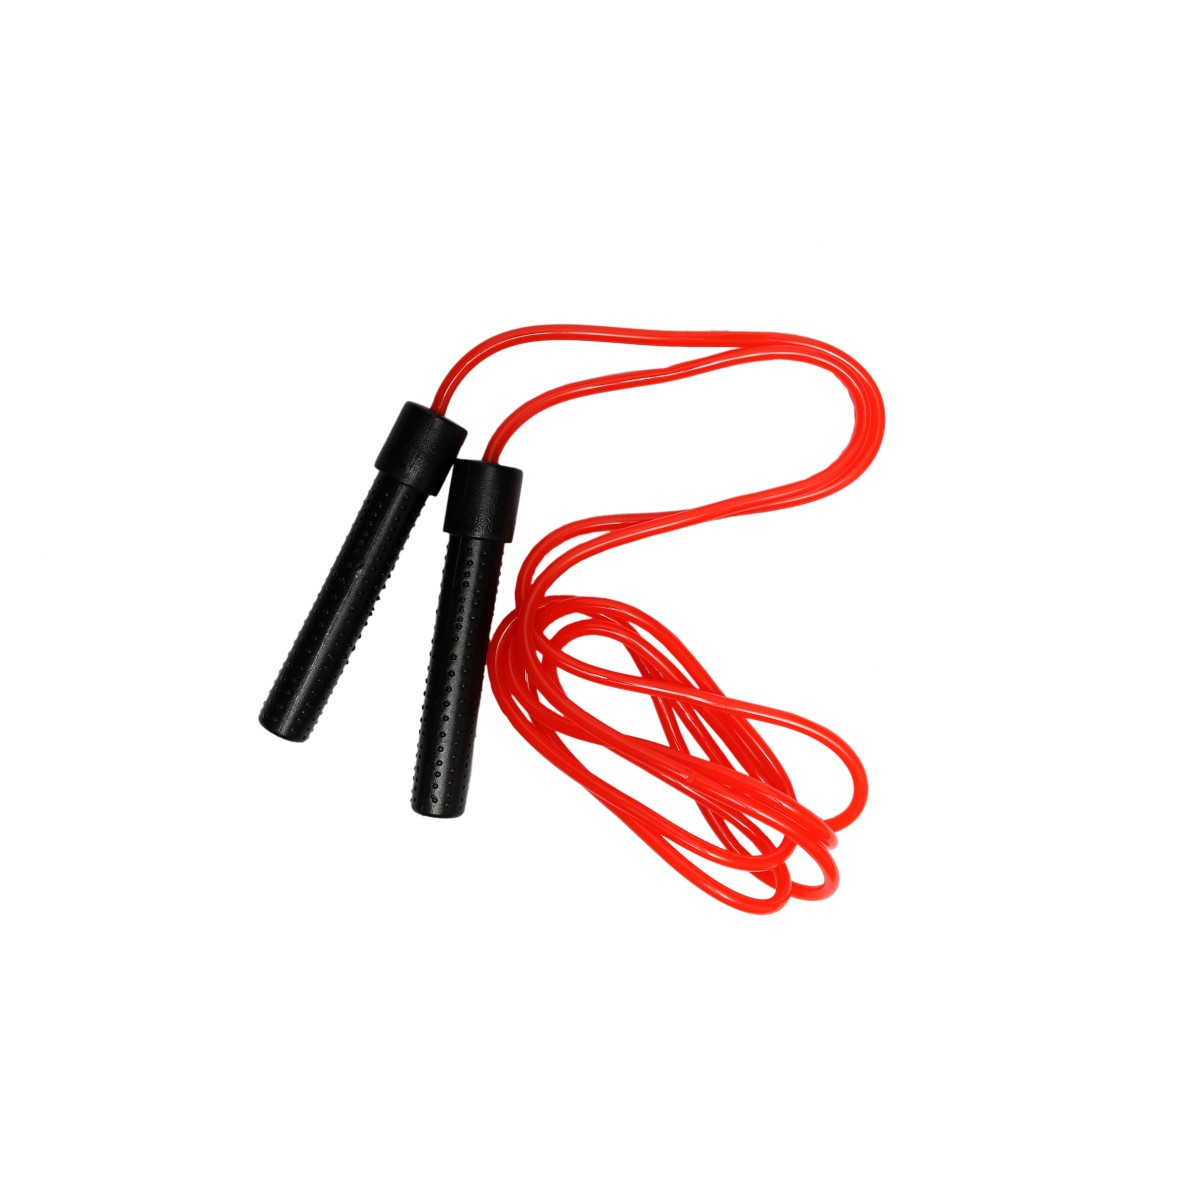 Malino Premium Skipping Rope Red with Black Handle